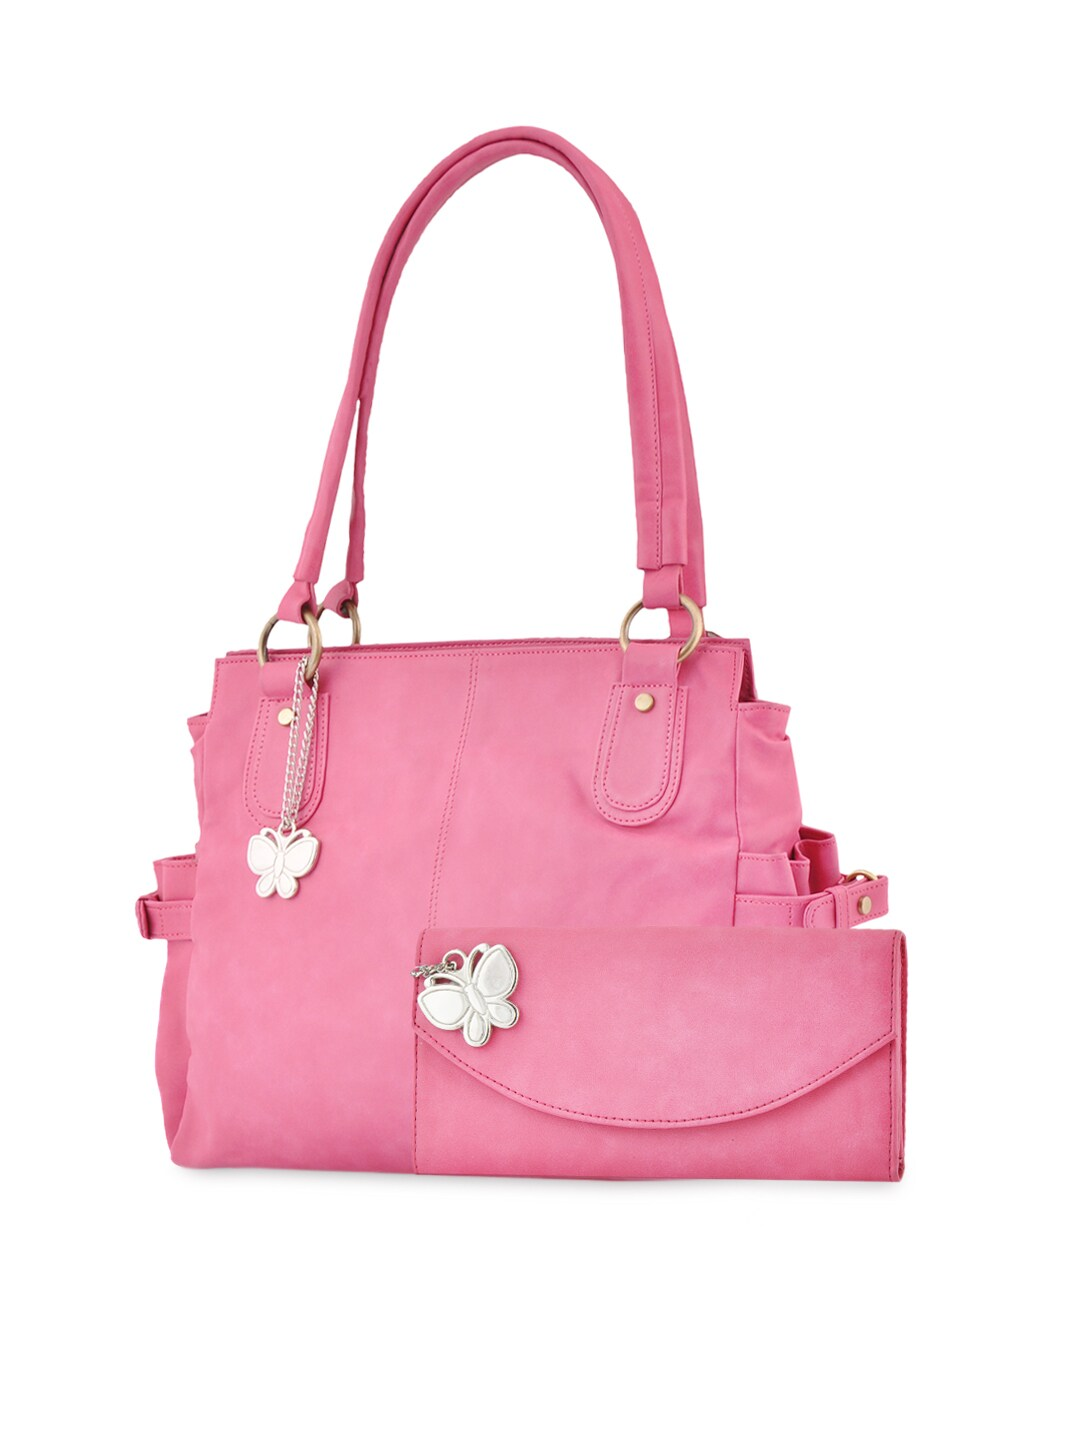 Women Hobos   Shoulder Bags Price List in India 29 March 2019 ... 84e96cb898d37